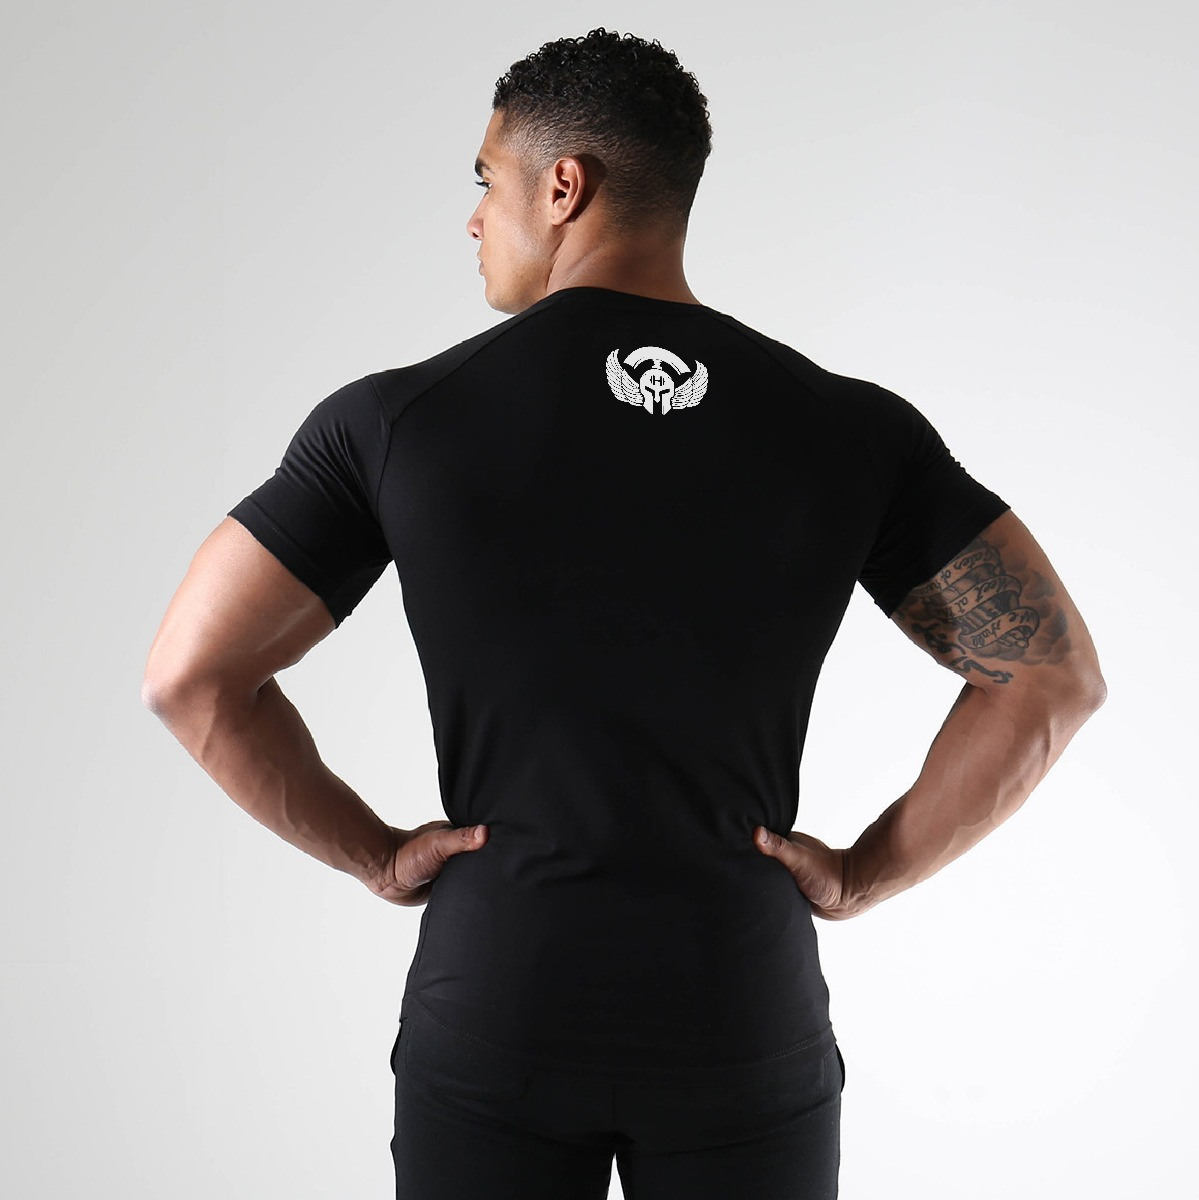 29702e282 camiseta dry fit academia treino fitness run body legionary. Carregando zoom .